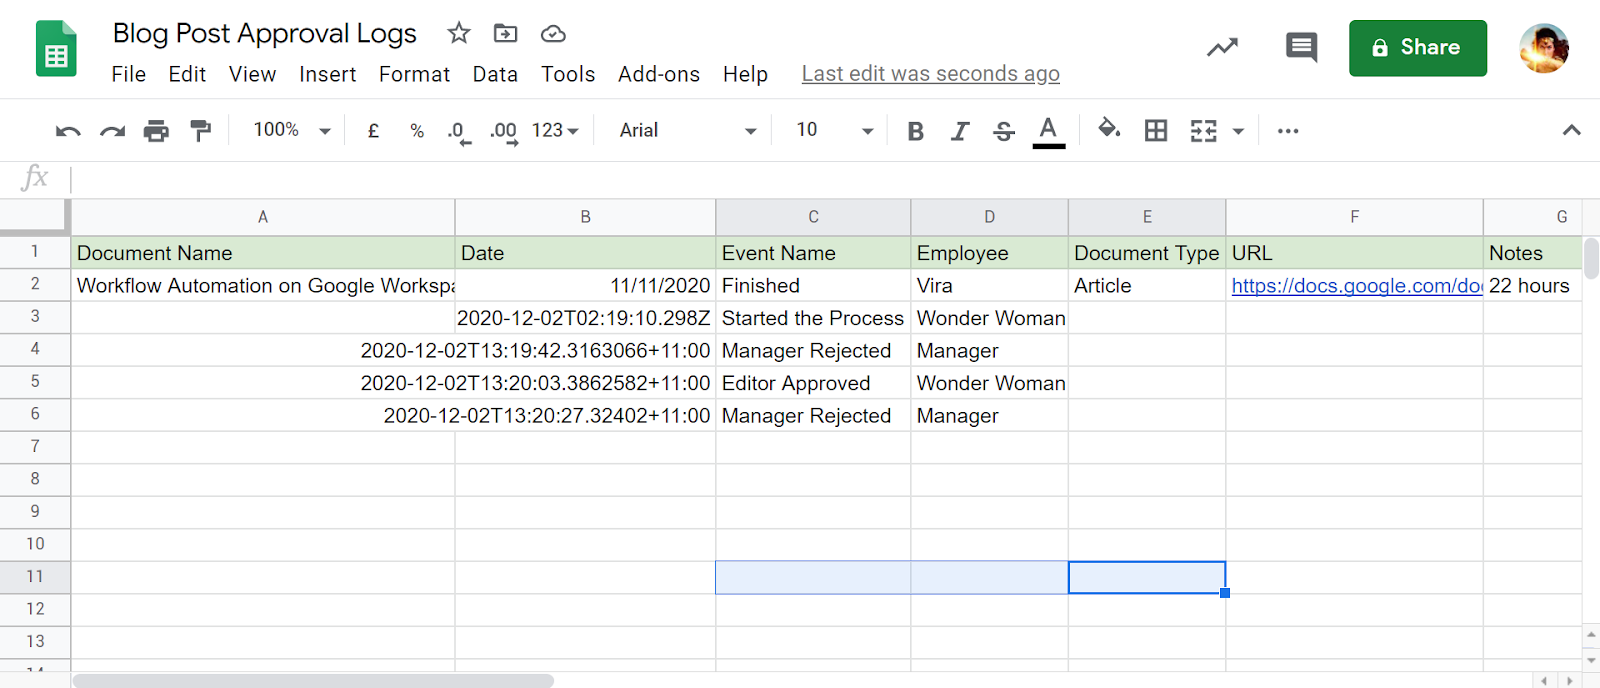 The blog post approval log sheet for the Document Approval workflow automation.